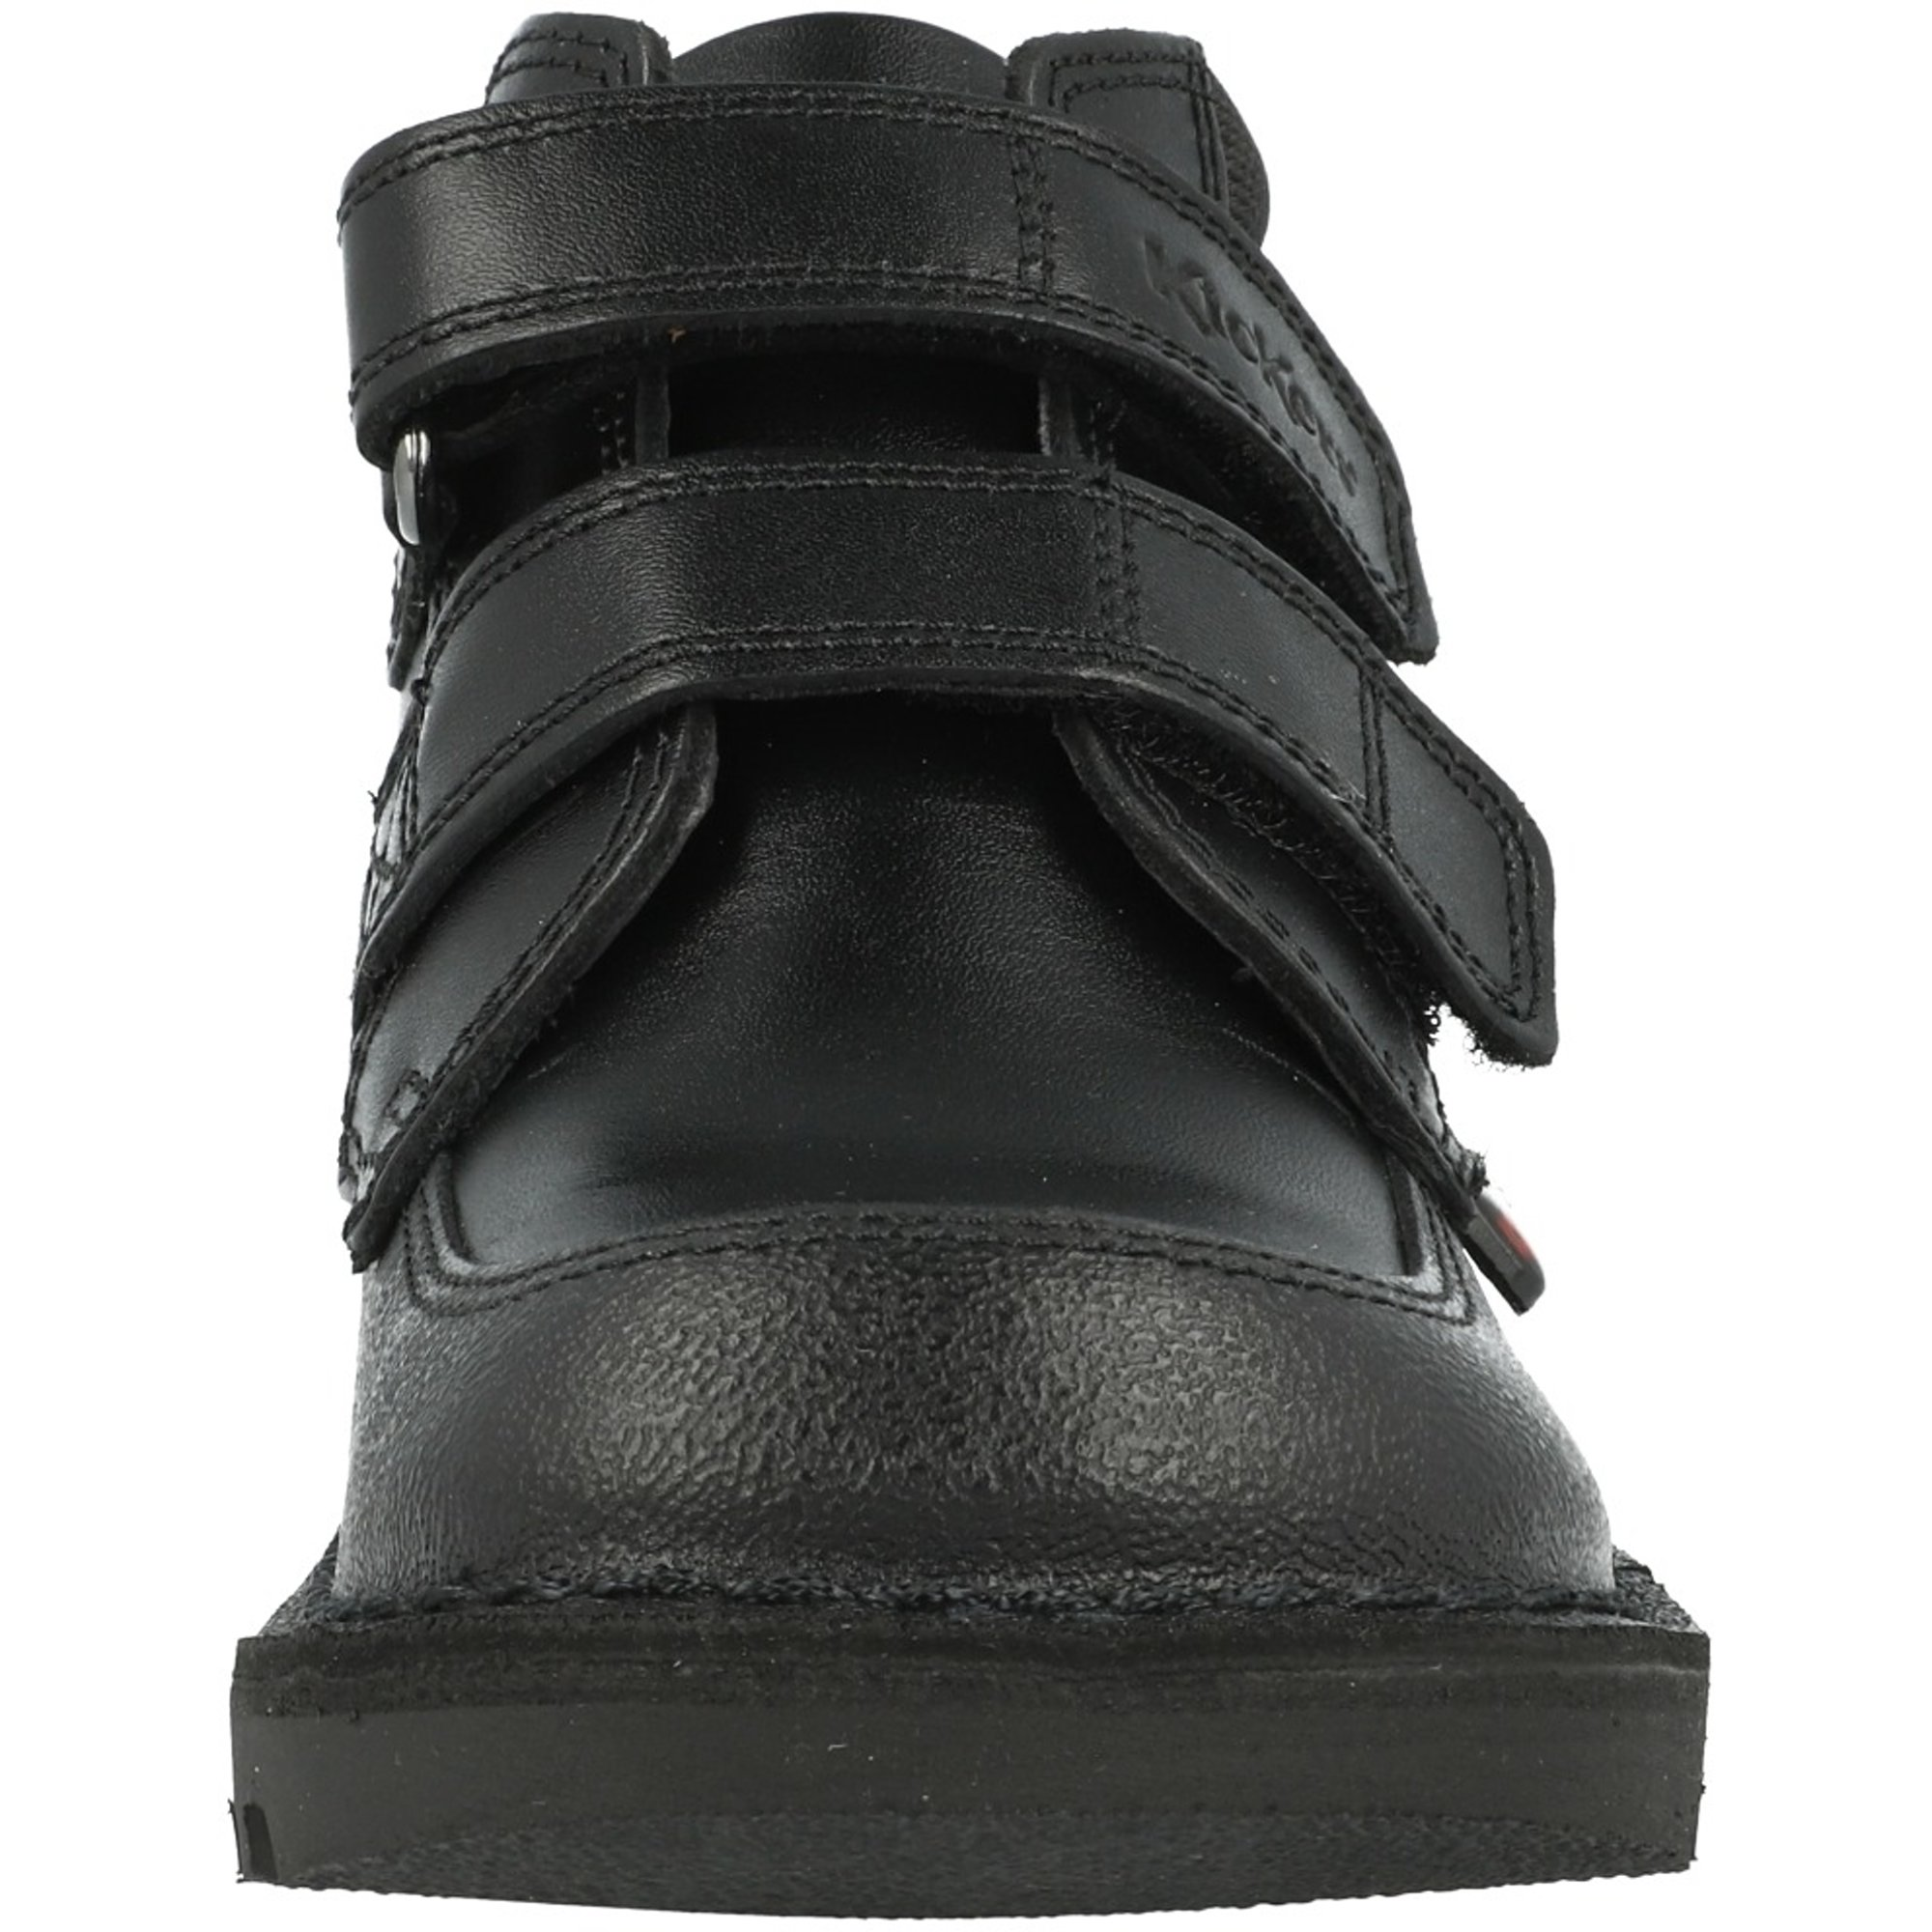 Kickers Kick Scuff Hi Black Leather